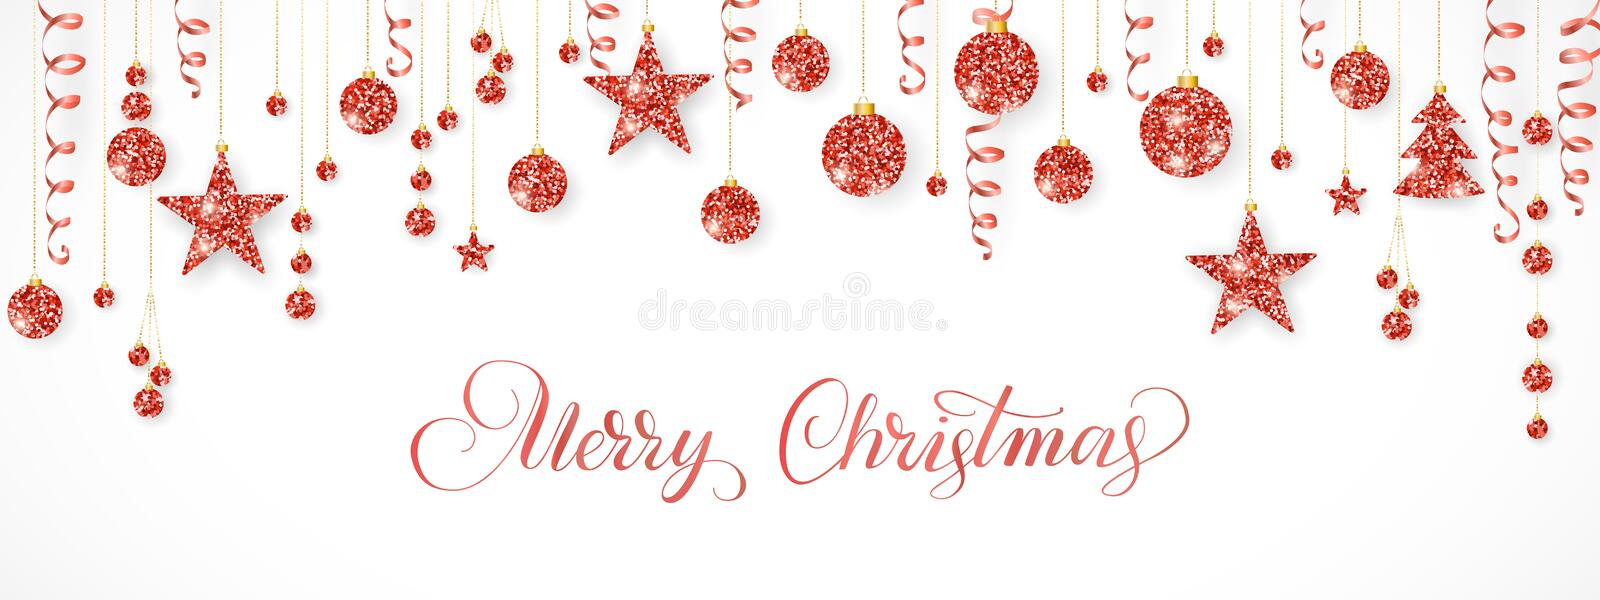 Christmas garland. Red glitter ornaments isolated on white. Hanging ribbons and balls. Merry Christmas calligraphy vector illustration